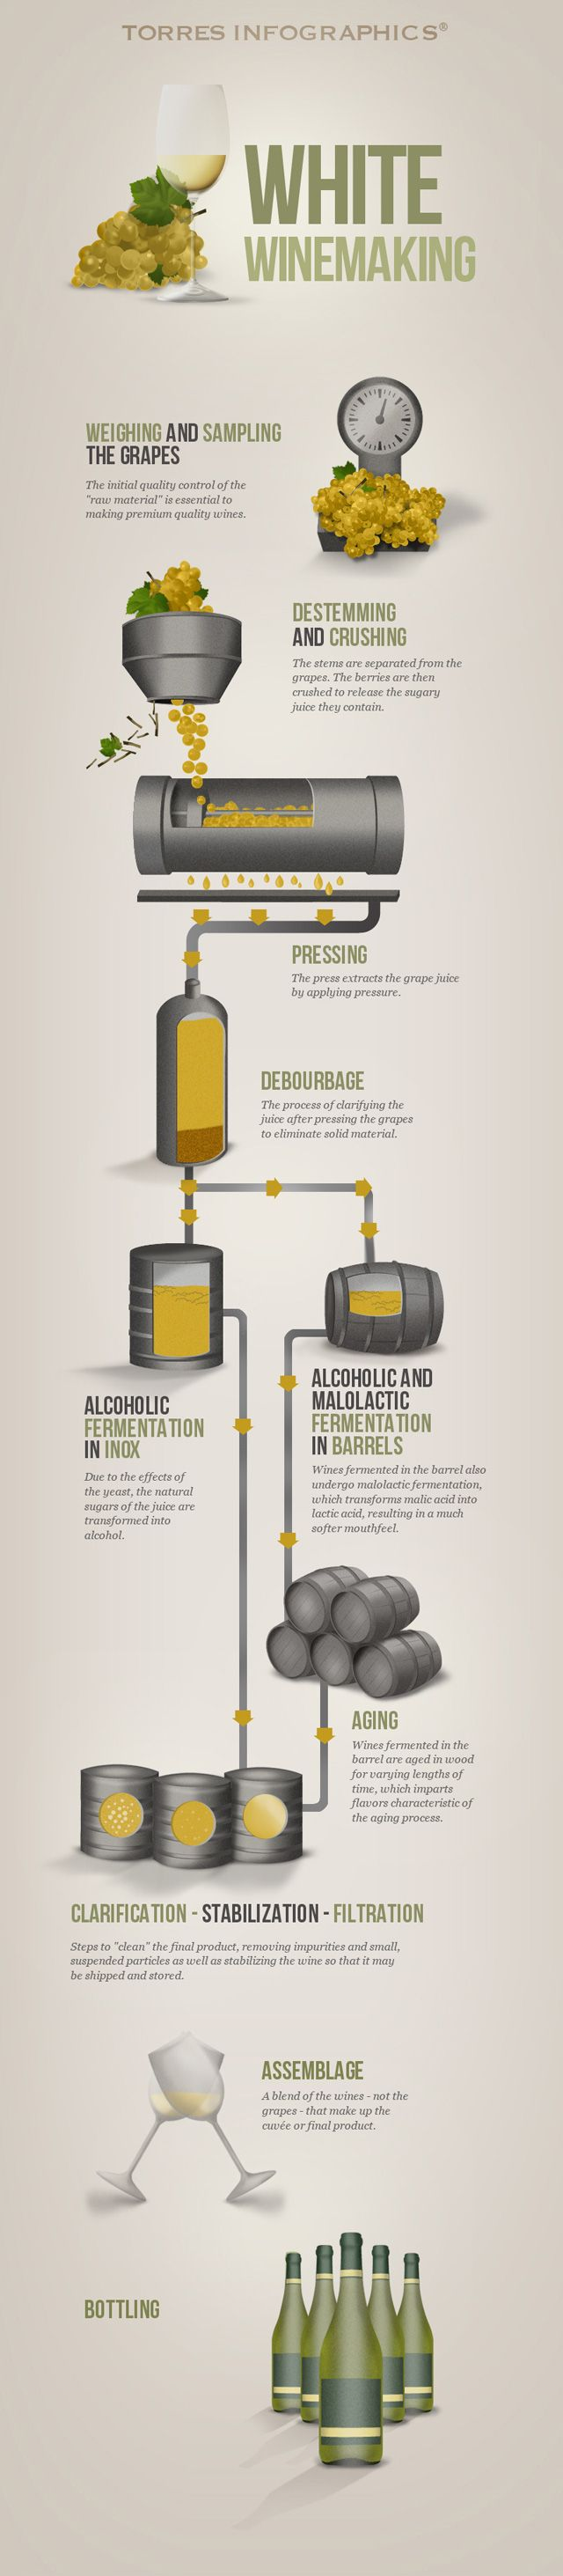 How white wine is made - Torres Wine Club | Your direct link to the world of wine